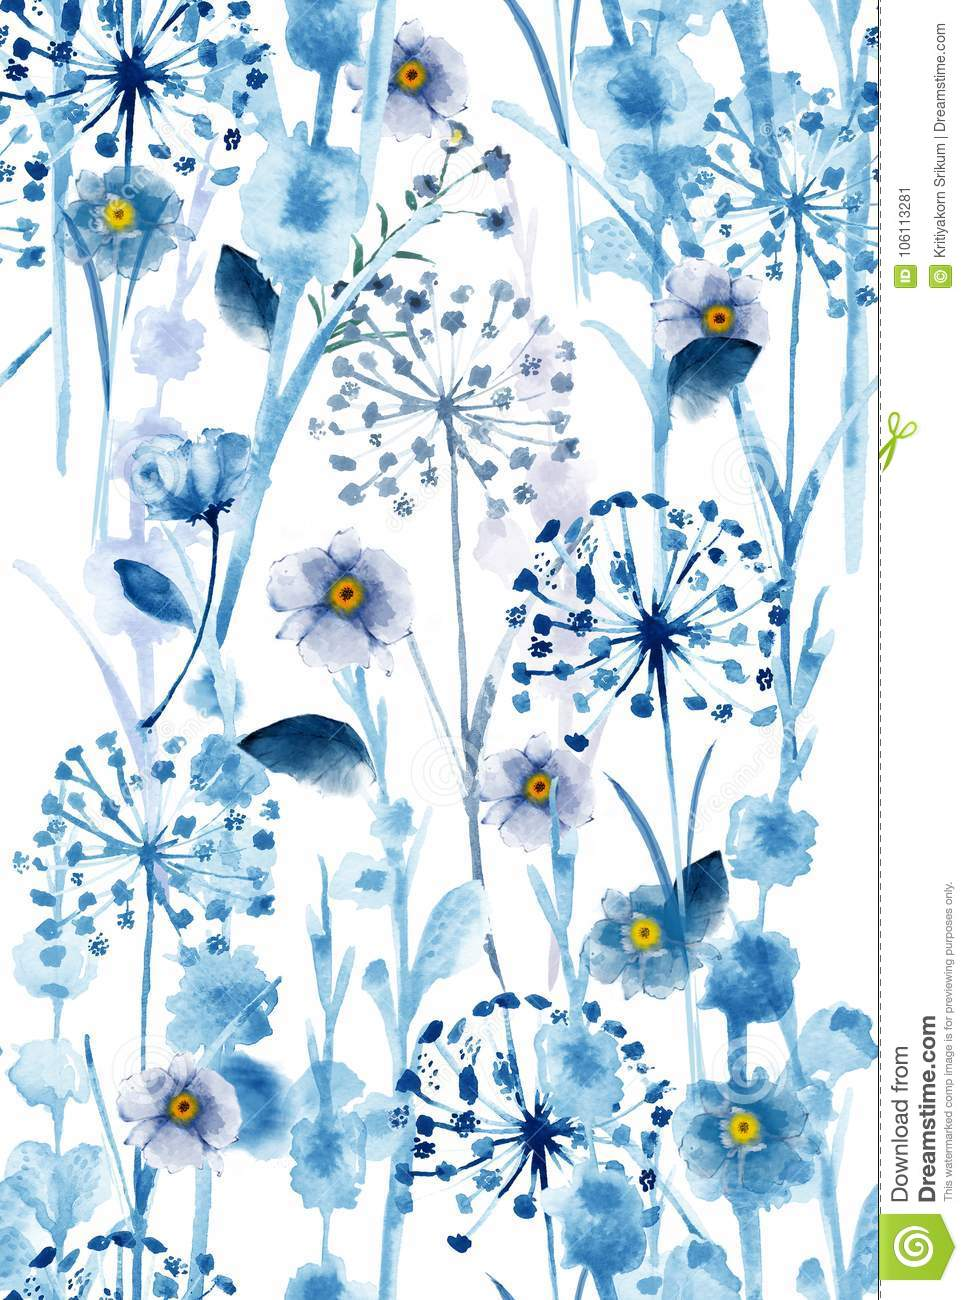 Watercolor Monotone In Blue Wild Floral Pattern Delicate Flower